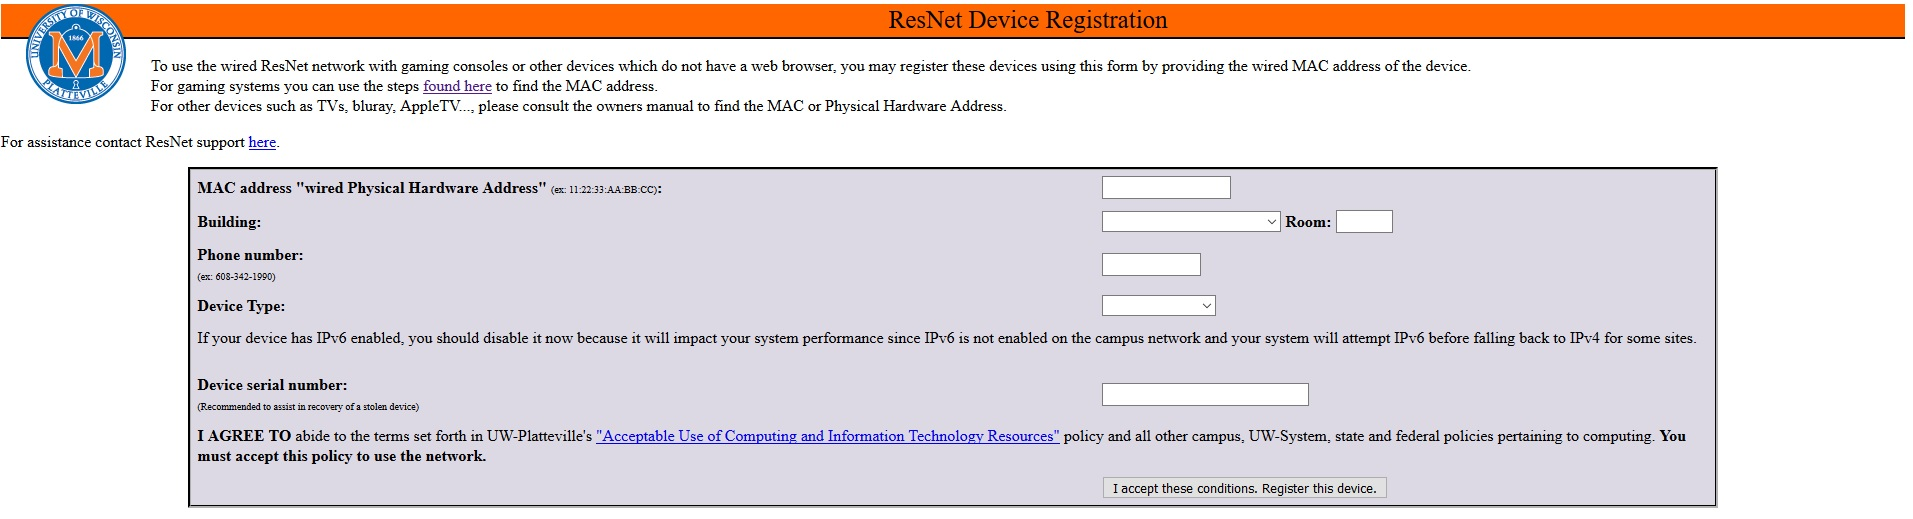 device registration webpage